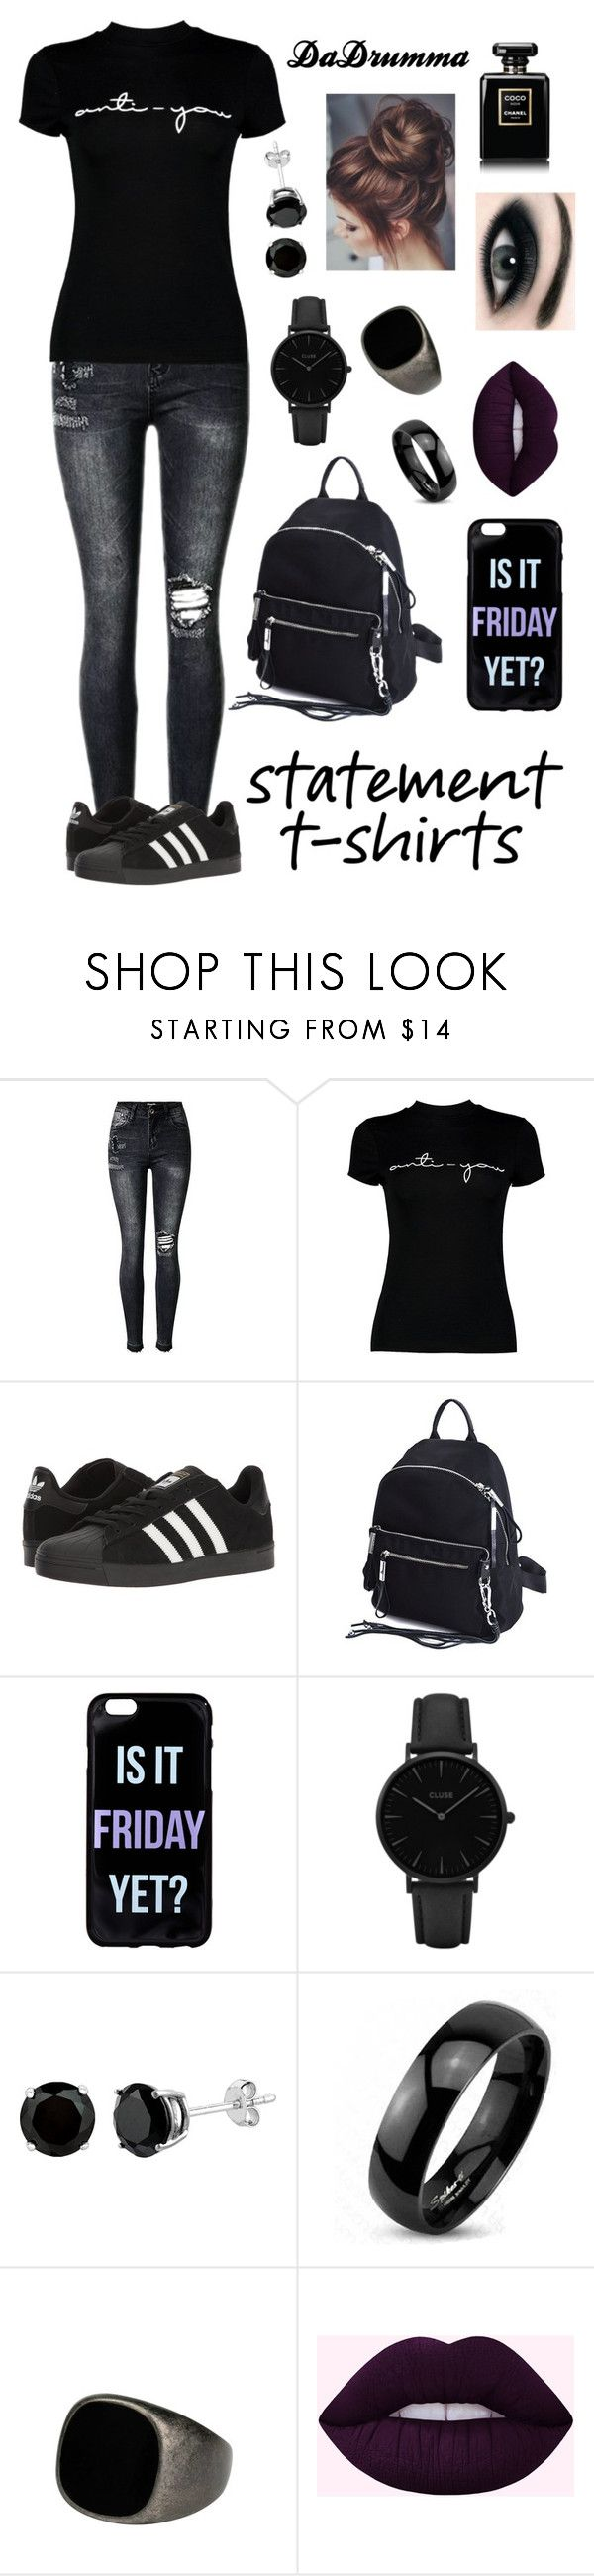 """""""Anti-You"""" by dadrumma ❤ liked on Polyvore featuring Boohoo, adidas, CLUSE, West Coast Jewelry, Max Factor, Chanel, antiyou and statementtshirts"""